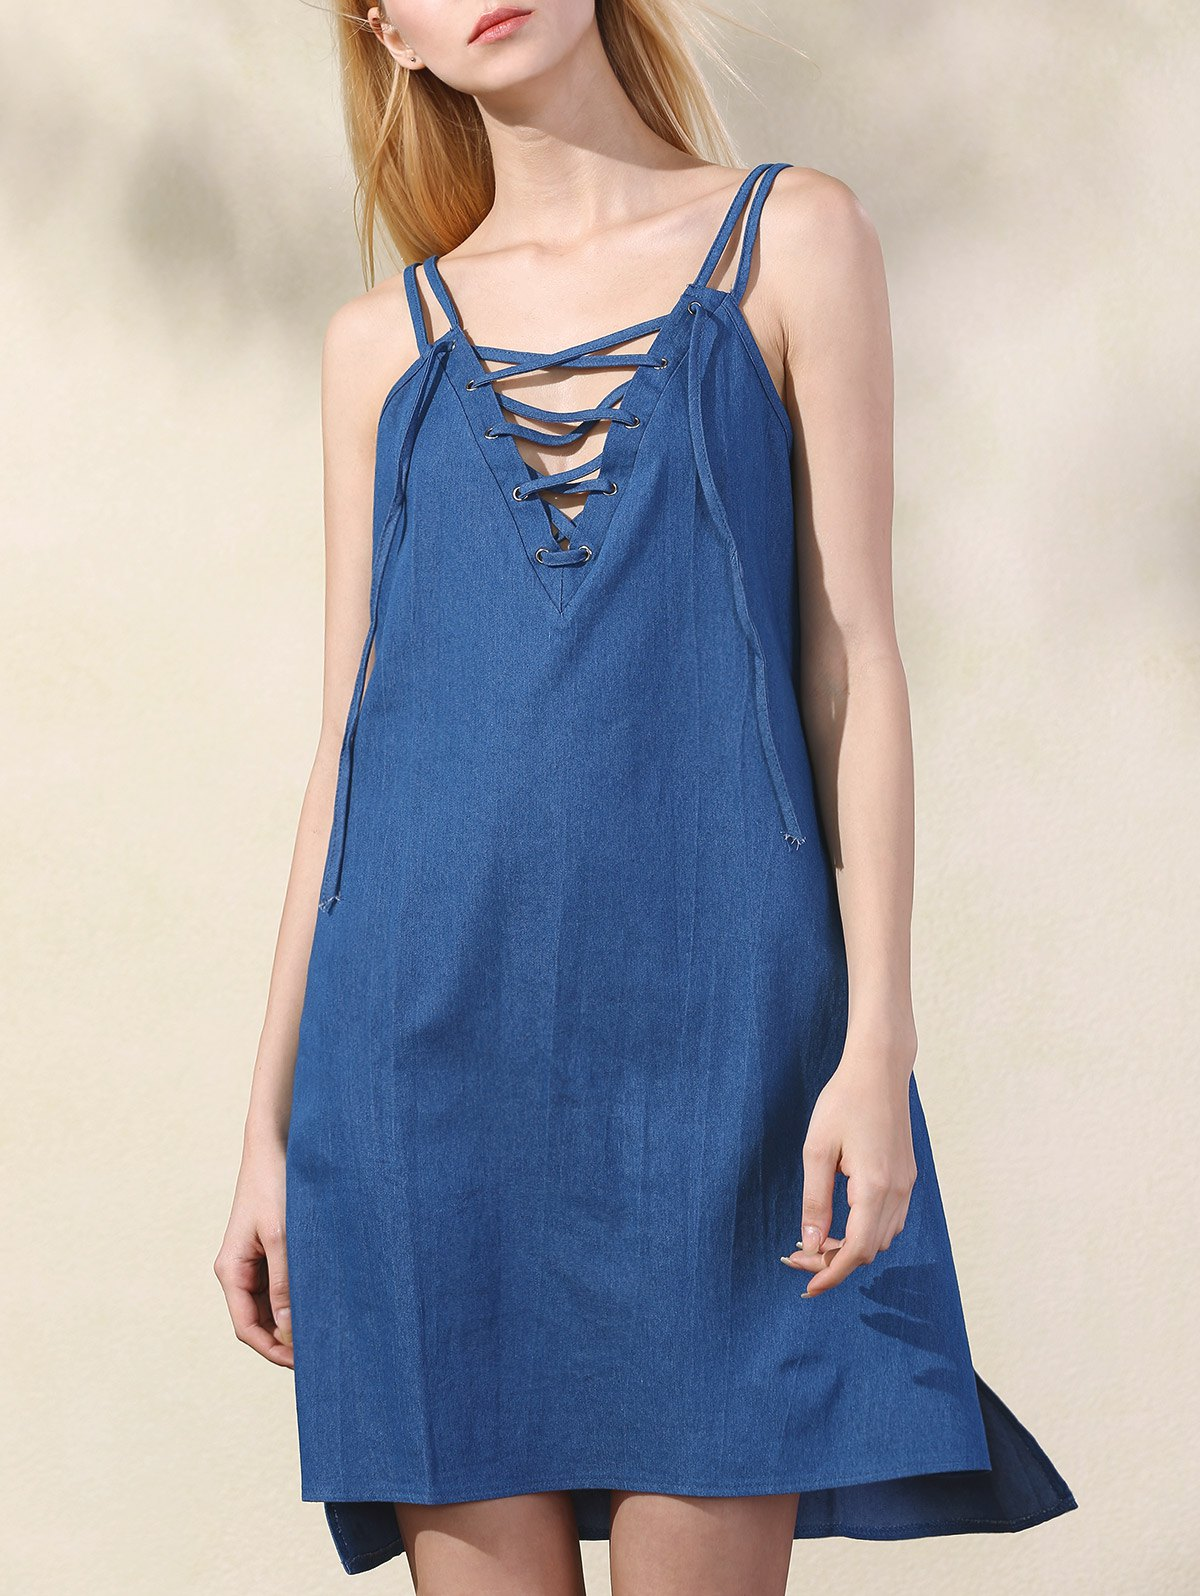 Lace Up Spaghetti Straps Chambray DressClothes<br><br><br>Size: S<br>Color: BLUE